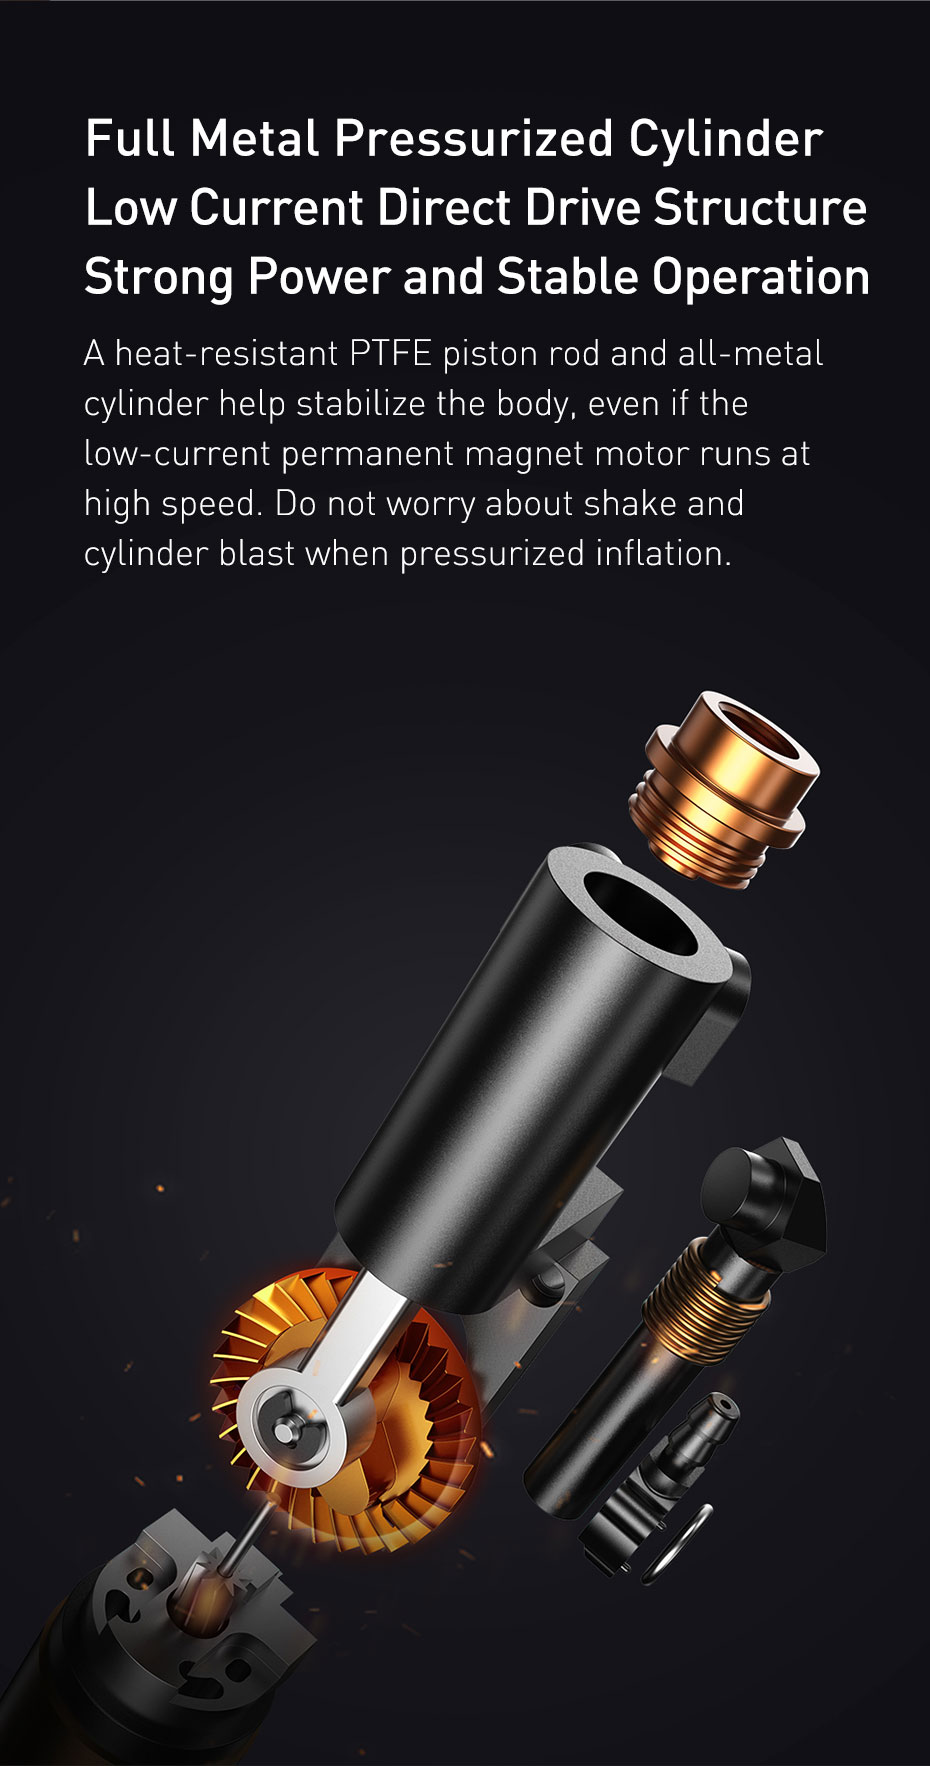 H764bfdce3ce149c6b4020da6f2d7cd2eg - Baseus 7500mAh Car Air Compressor 12V Portable Electric Tyre Tire Inflator Mini Auto Air Inflatable Pump For Car Bicycle Boat